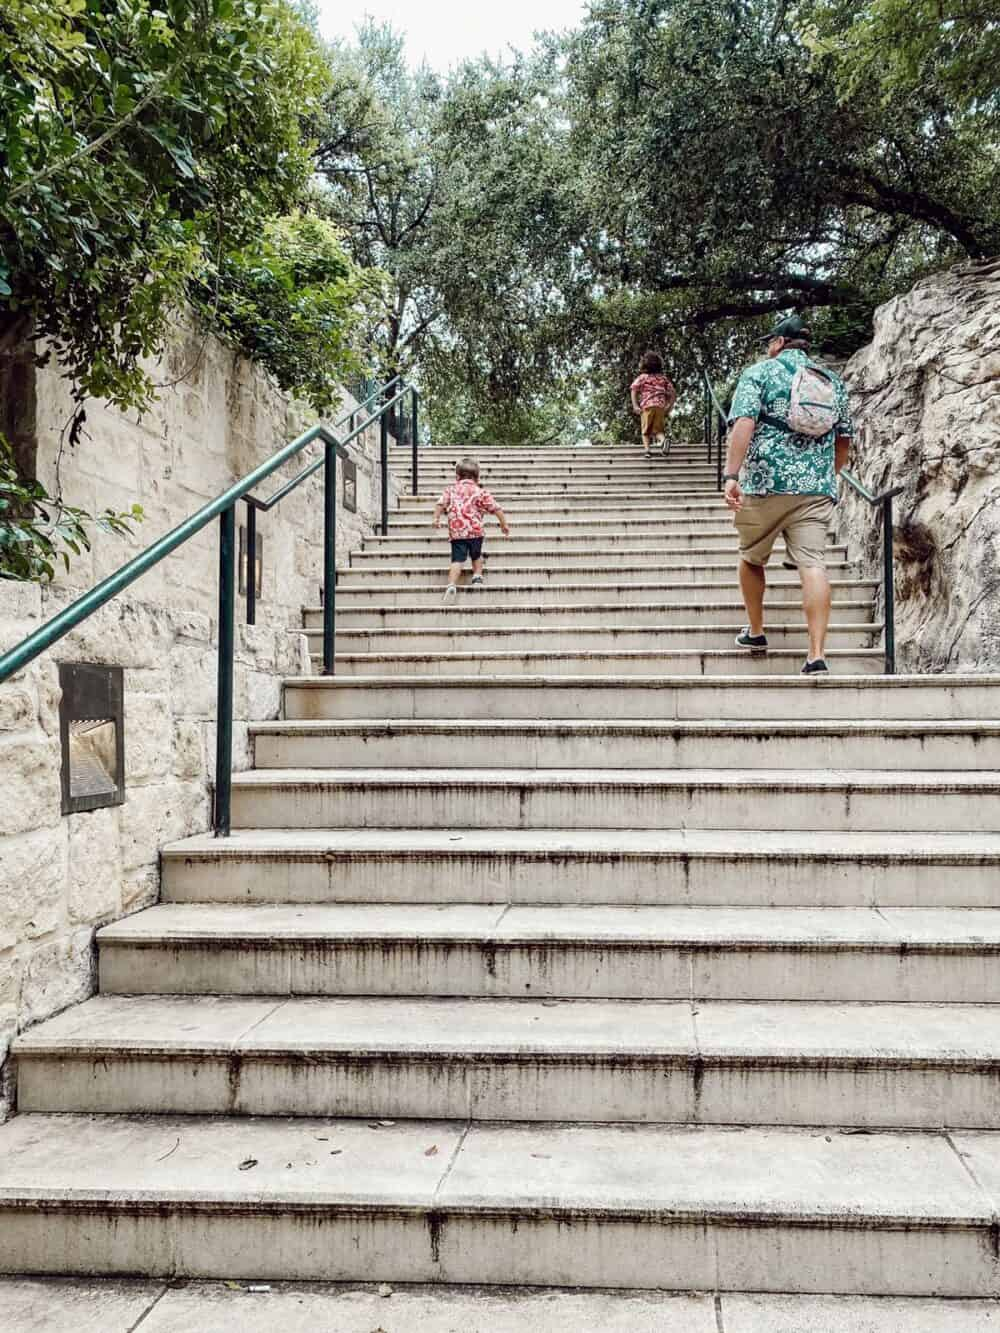 father and two young boys walking up a staircase at the SAn ANtonio riverwalk